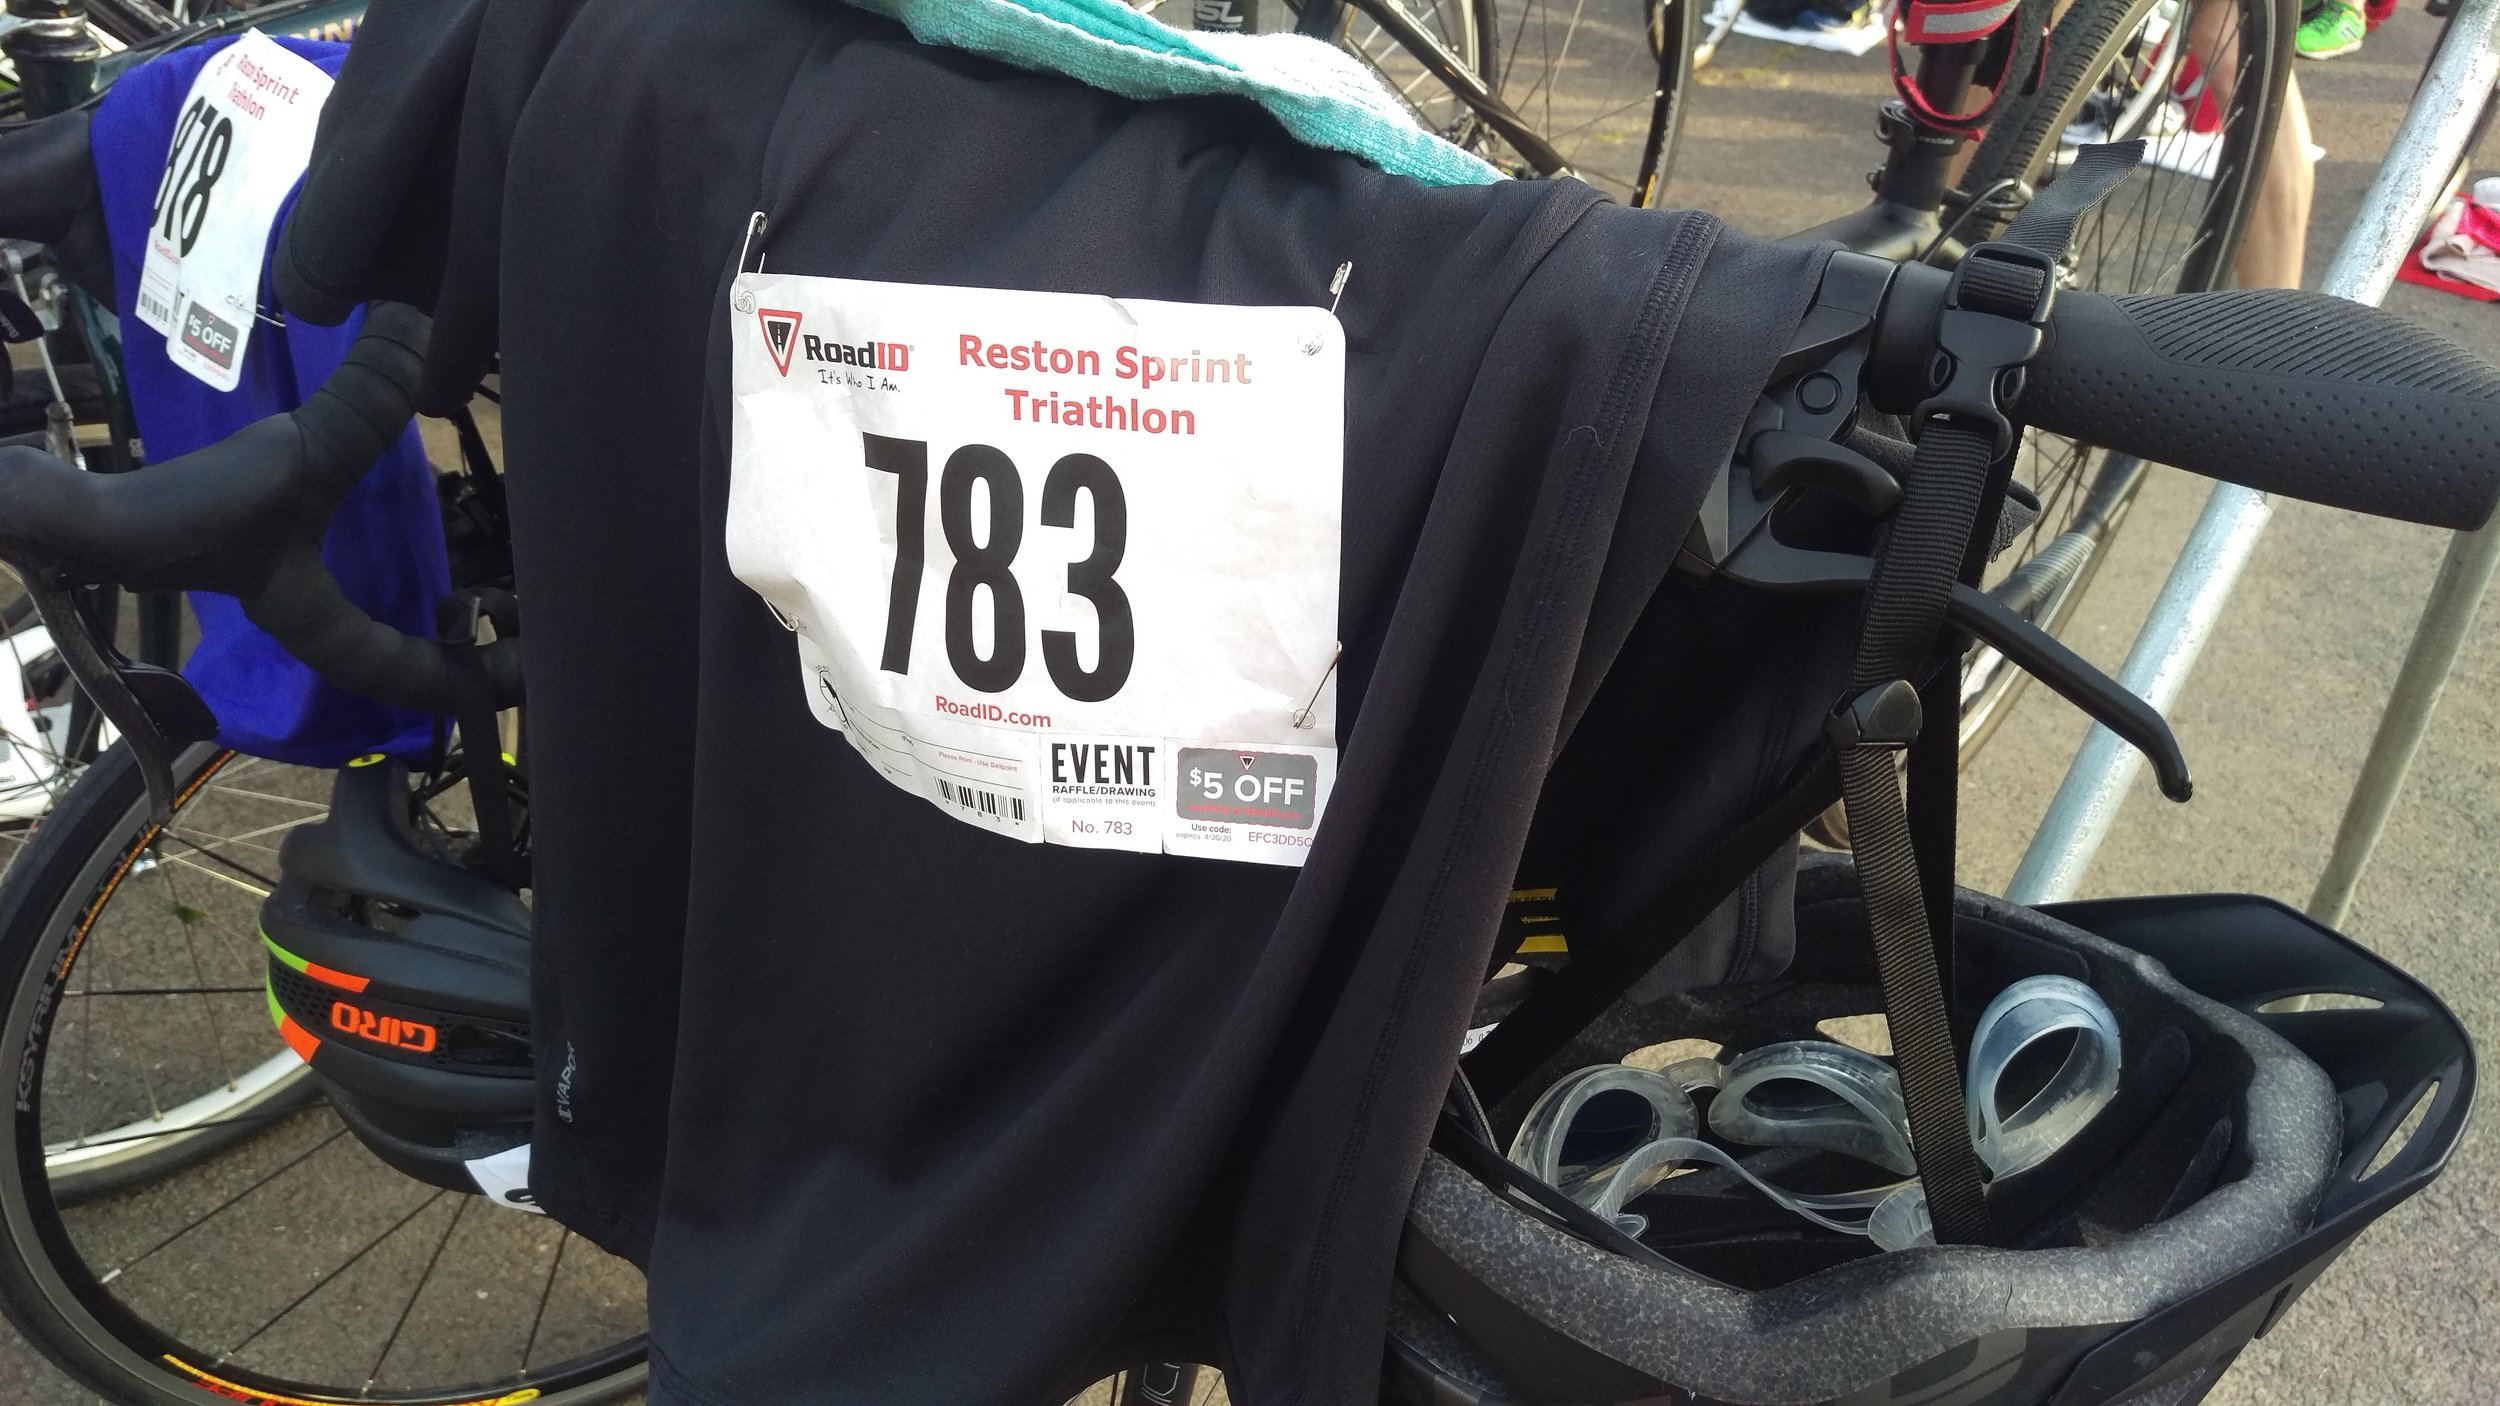 Number is ready for the bike transition